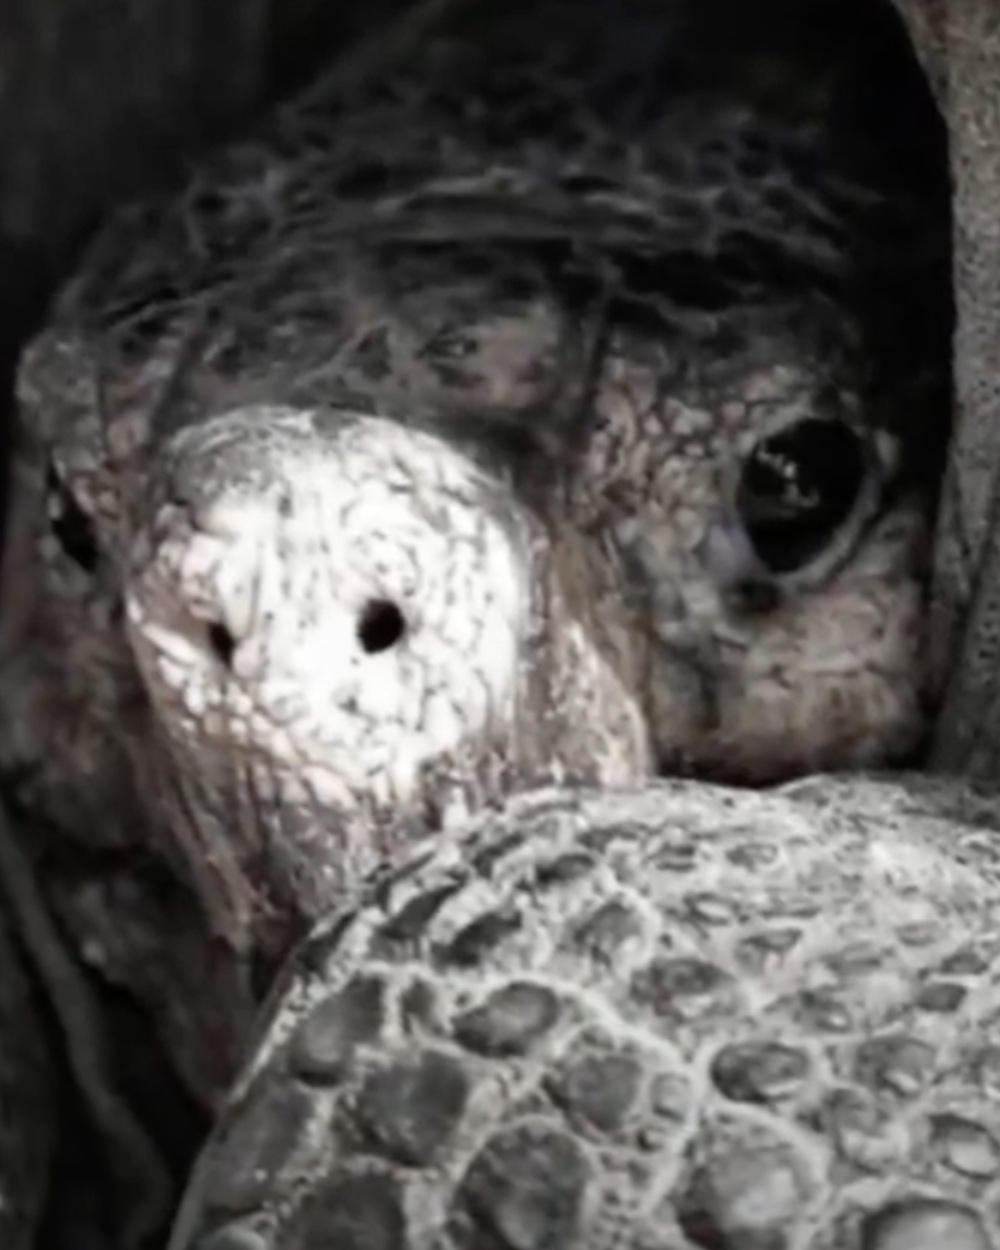 It is hoped that Fernanda will be able to mate with a male giant tortoise and produce healthy offspring.